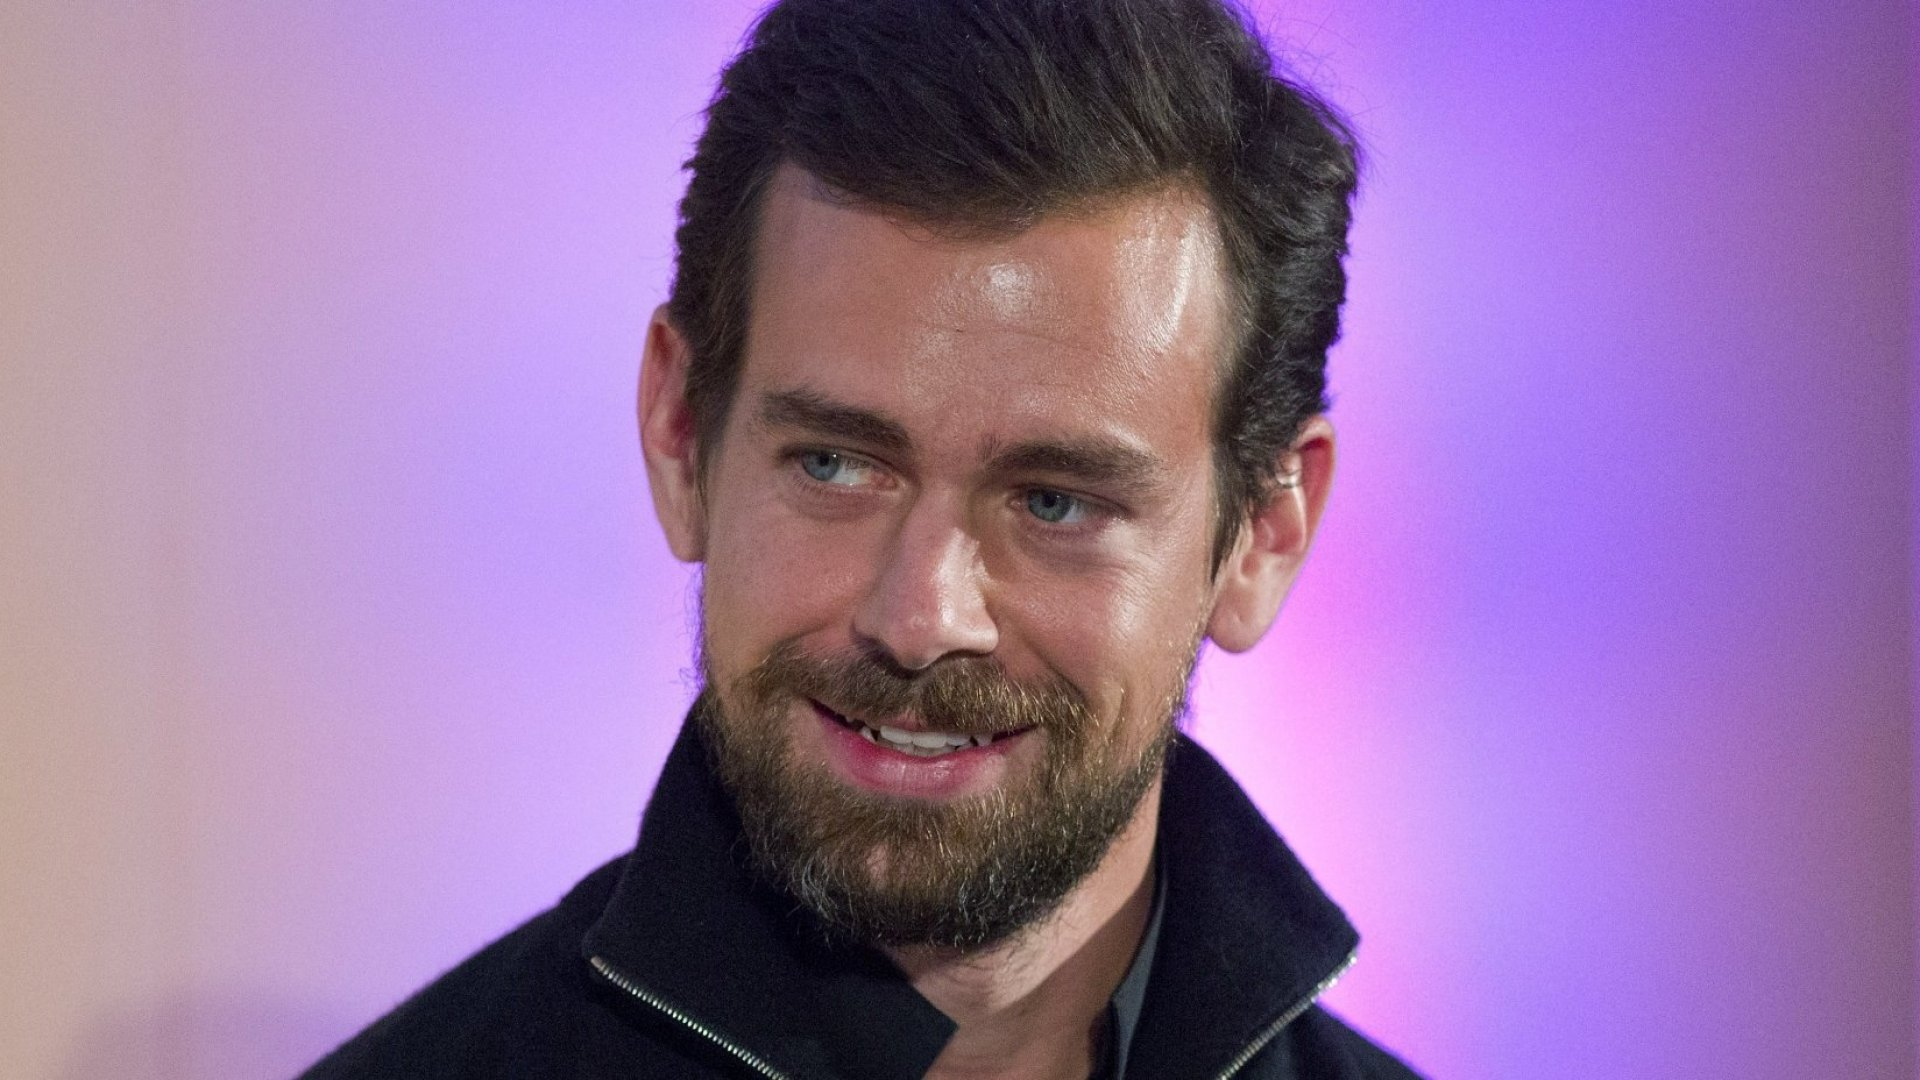 Visa Buys 10 Percent Stake in Square